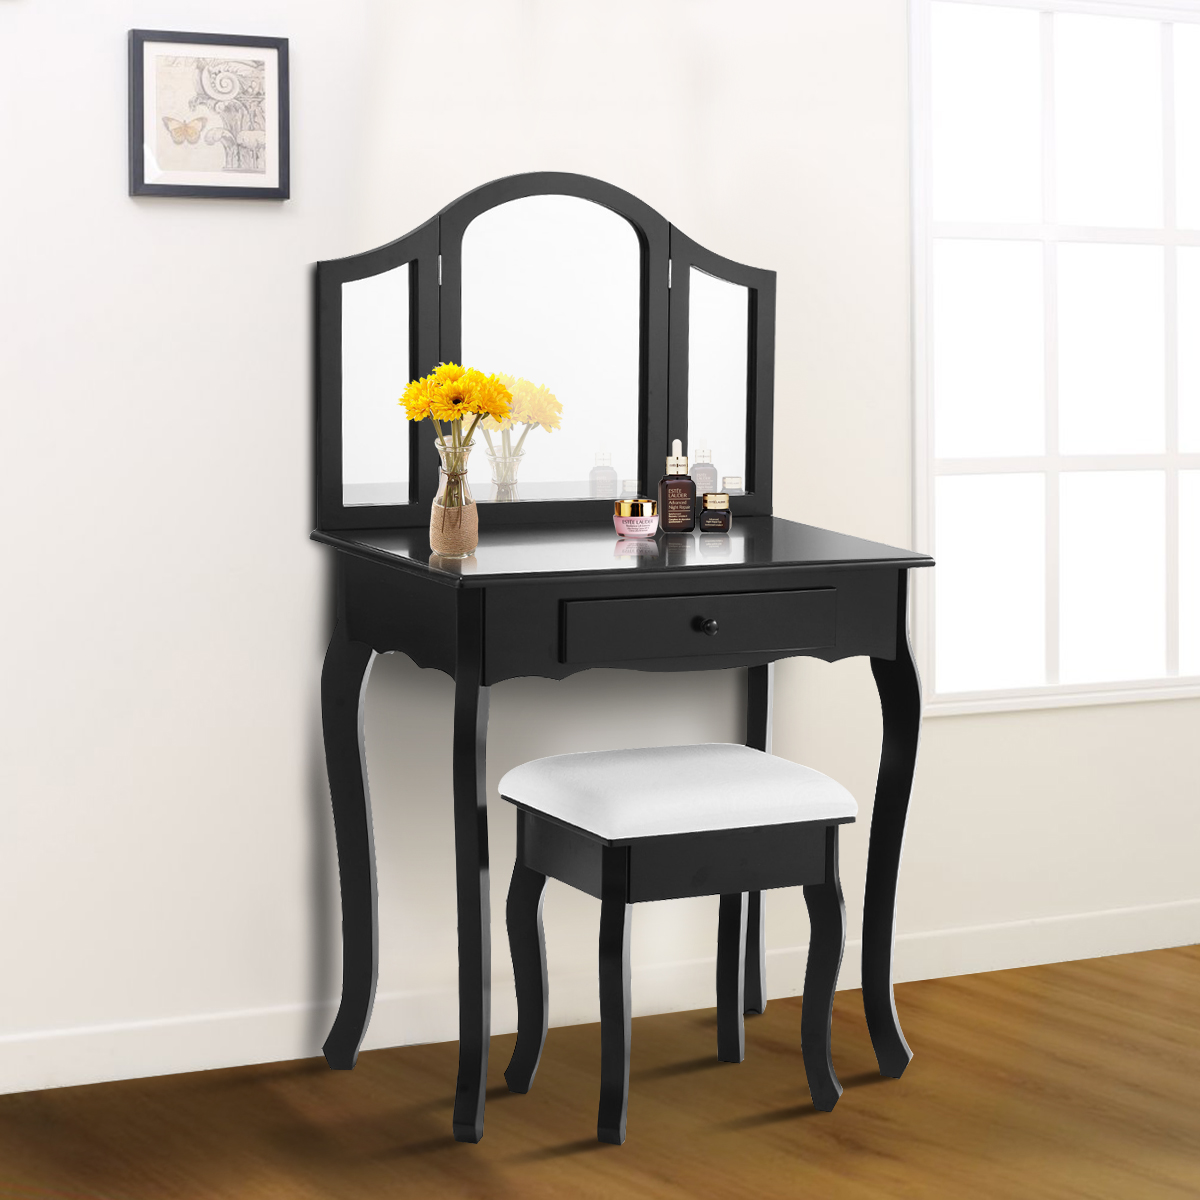 Costway Black Tri Folding Mirror Vanity Makeup Table Set bathroom W/Stool & Drawers